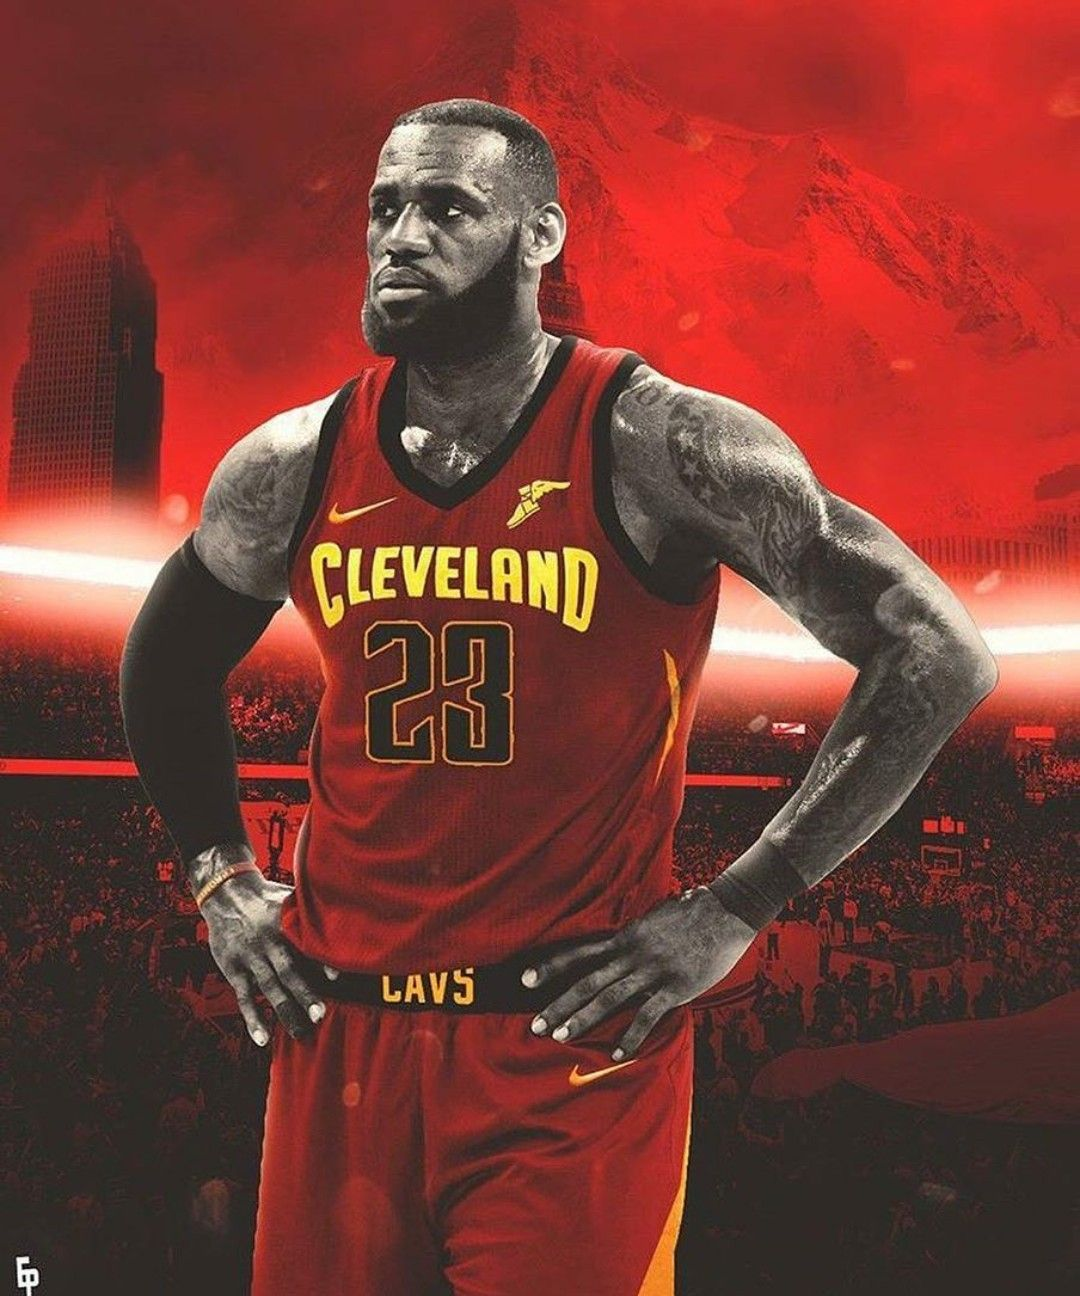 online store 556e3 6a756 Cleveland Cavaliers new Jersey 2017-2018 Looks savage on ...